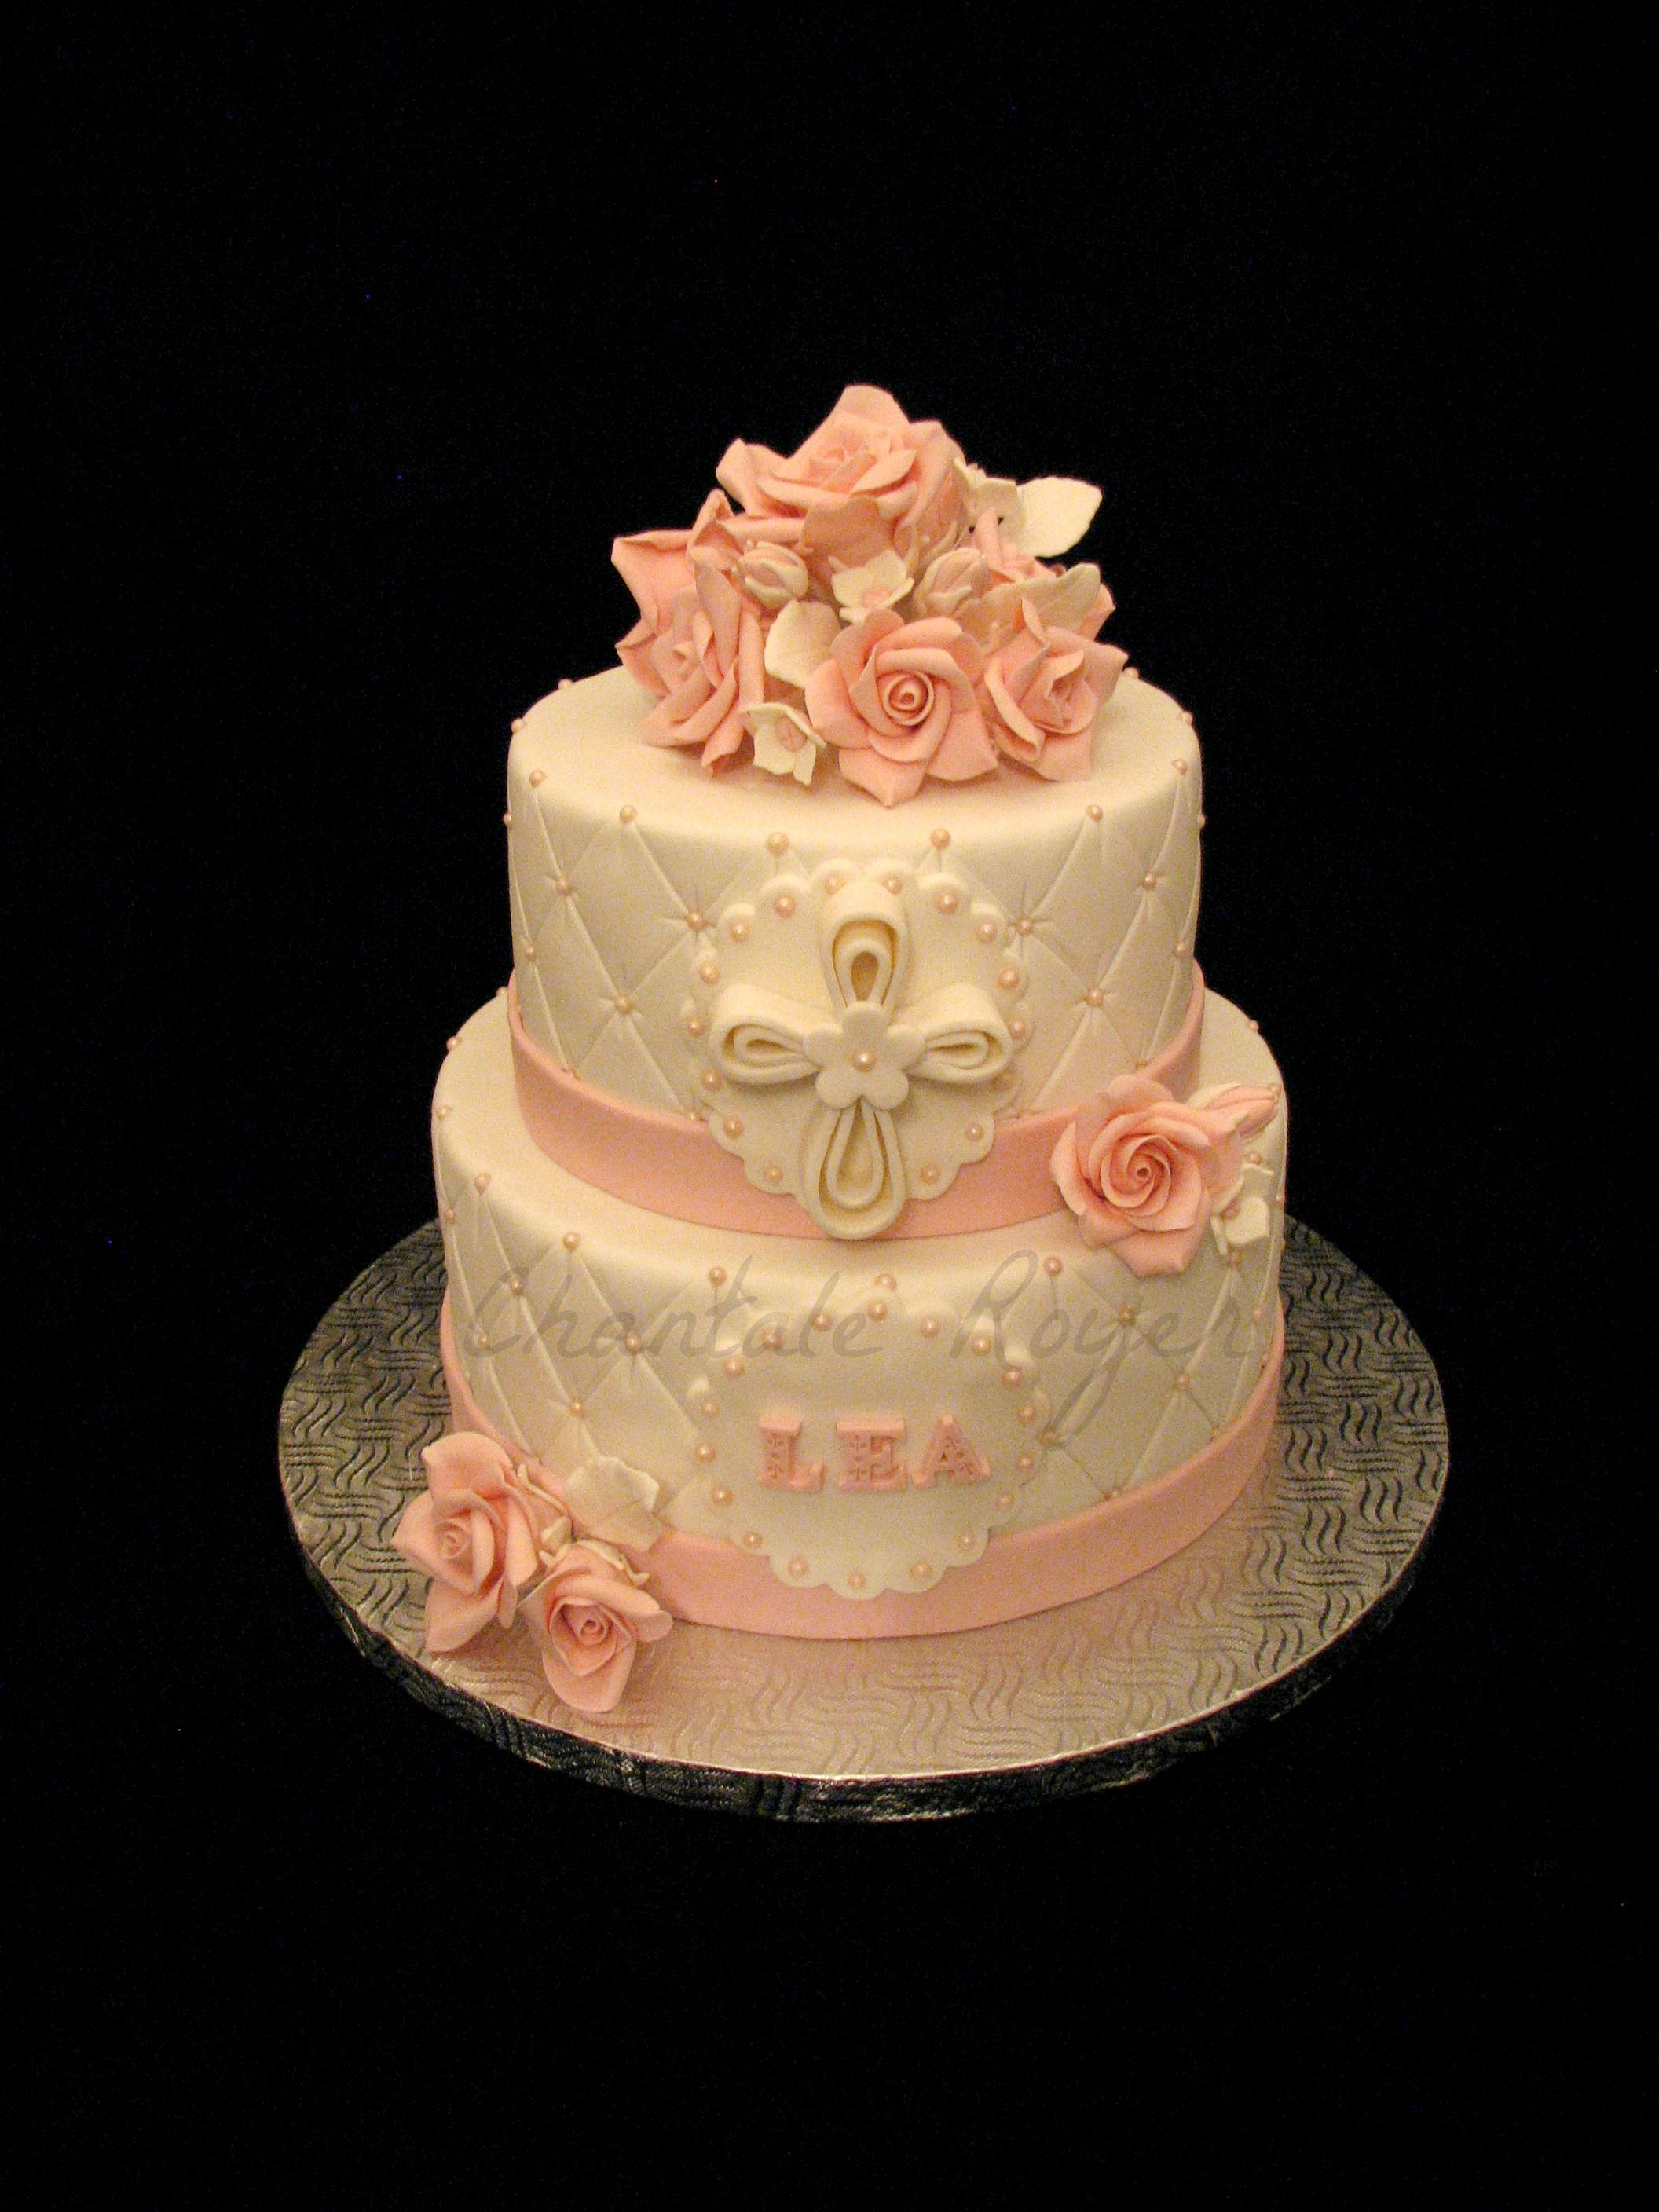 Cake g teau bapt me baptism christening fille girl roses rose cake g teau chantaloo - Decoration gateau bapteme fille ...